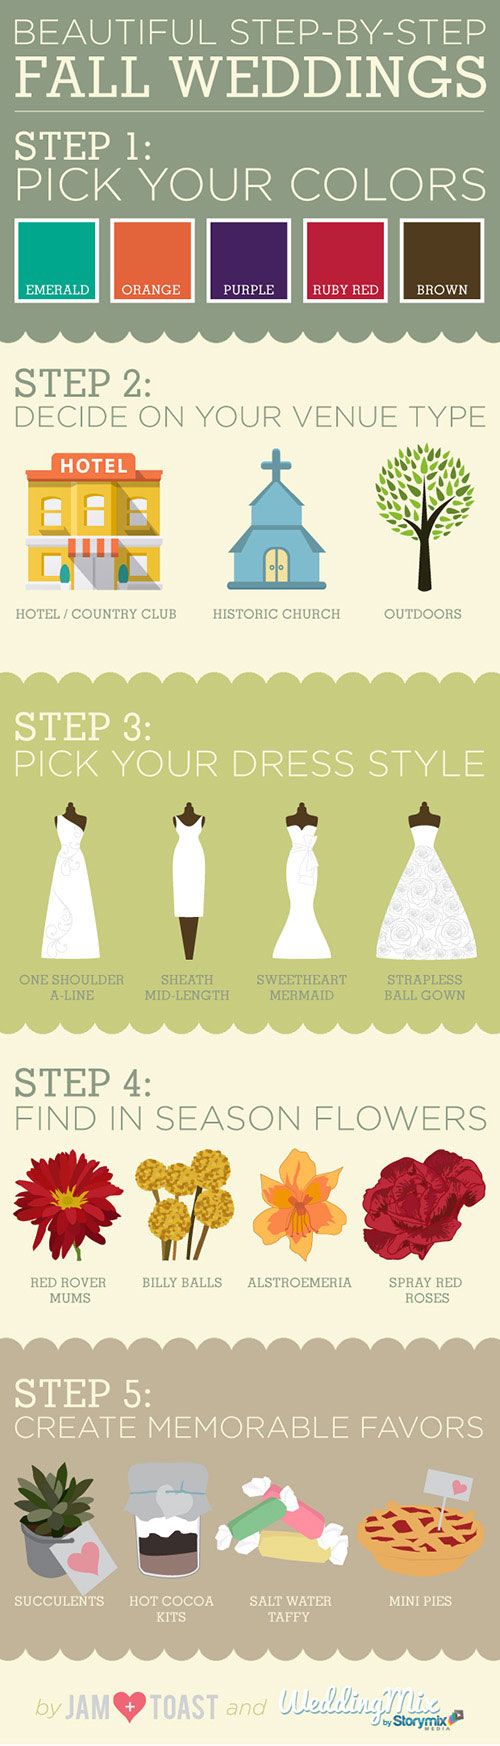 fall wedding style infographic